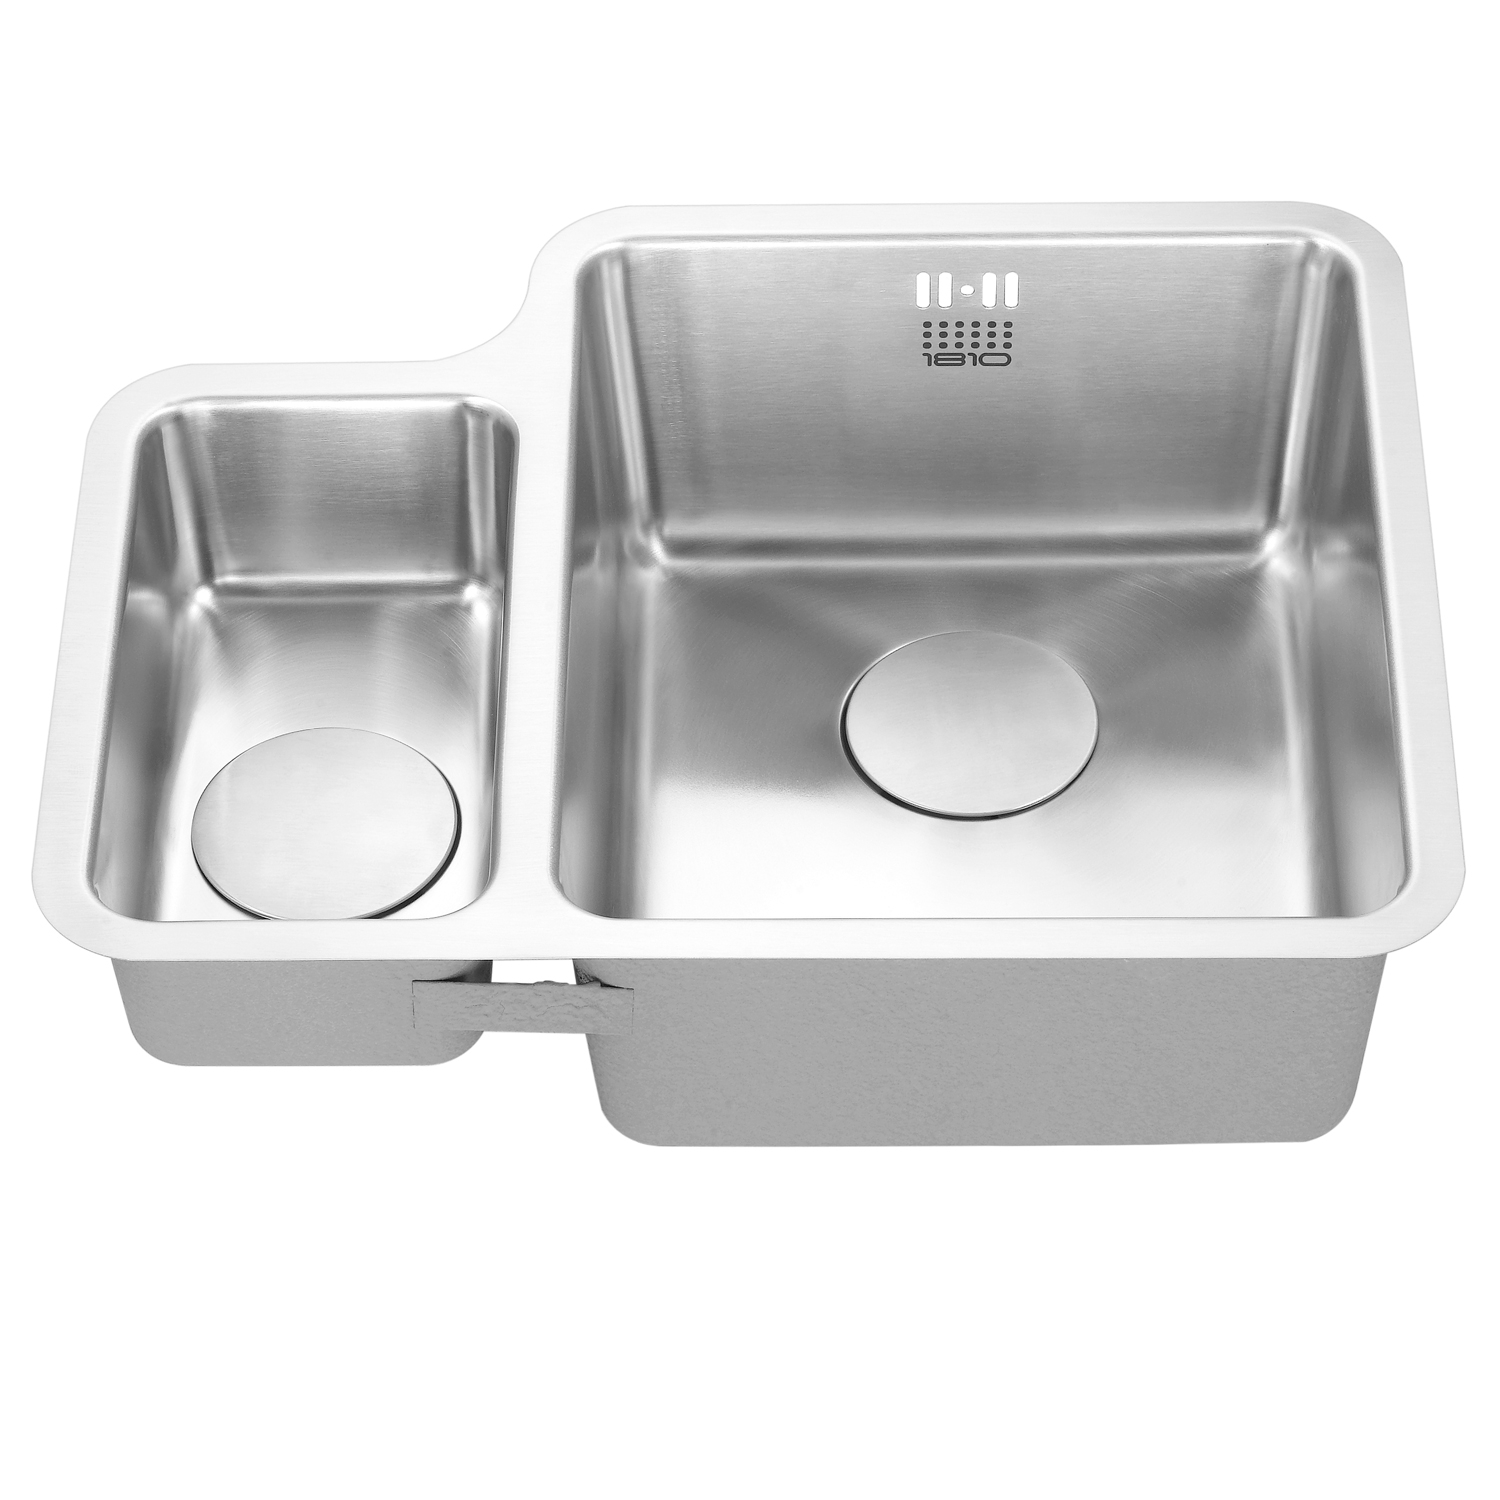 The 1810 Company Luxsoduo25 180/340U 1.5 Bowl Kitchen Sink - Right Handed